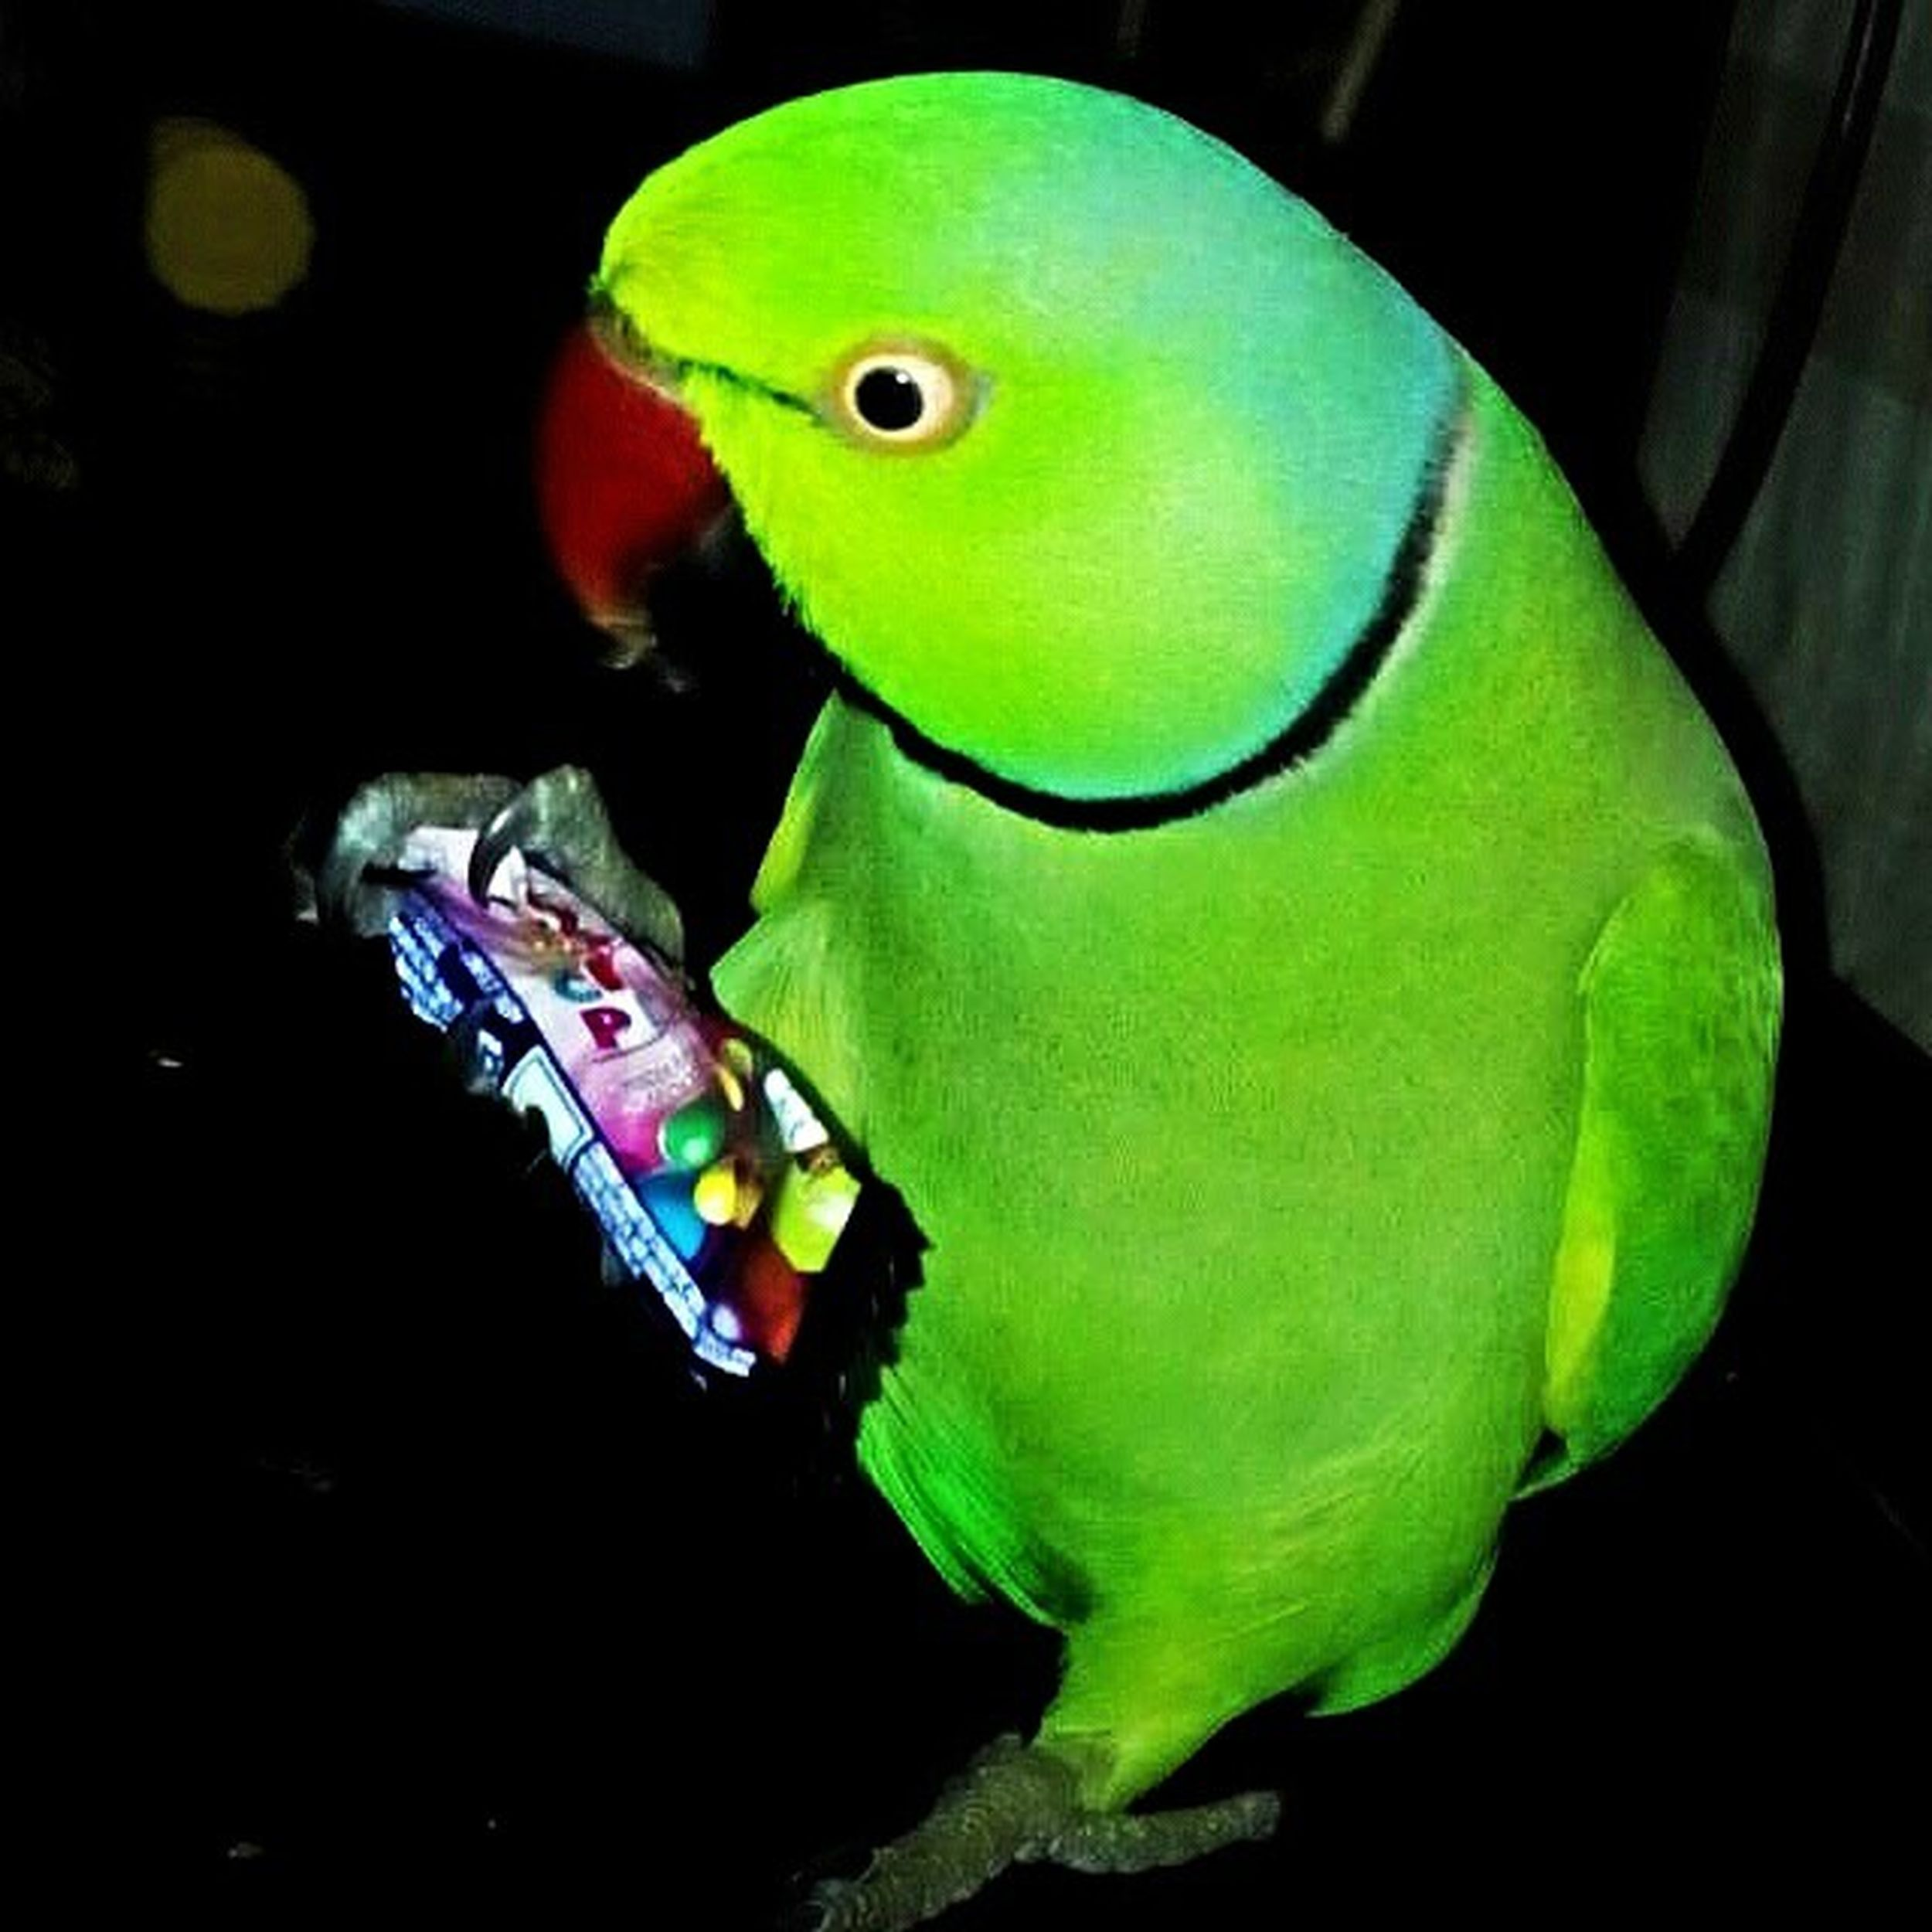 Always hungry and never ceases to make people laugh. Funny Pet Family Member Petstagram Green Bird Parrot Mitthu Photooftheday Gems Hilarious Endless Searchforfood Wings Playful Animallover Lovepets